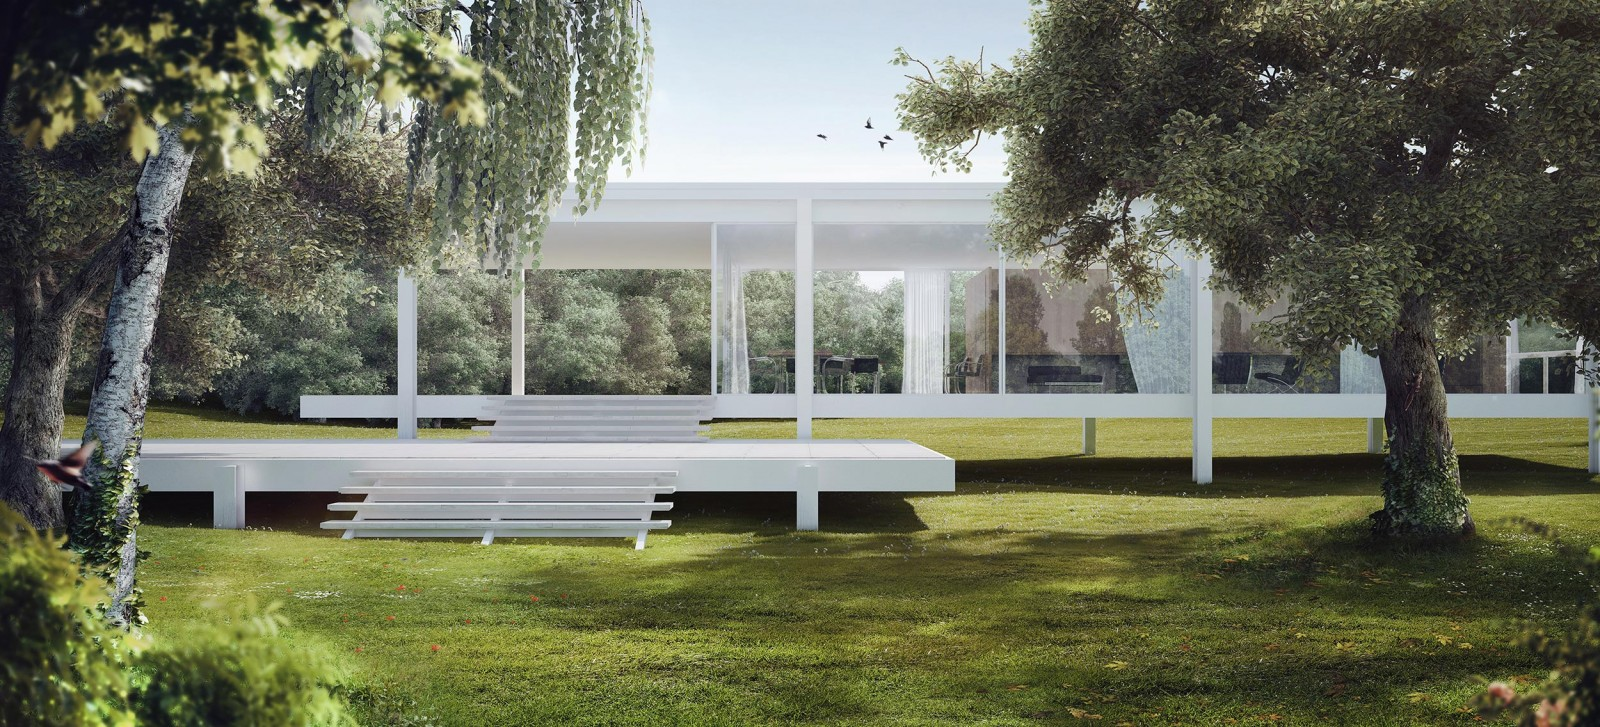 Farnsworth House Romuald Chaigneau